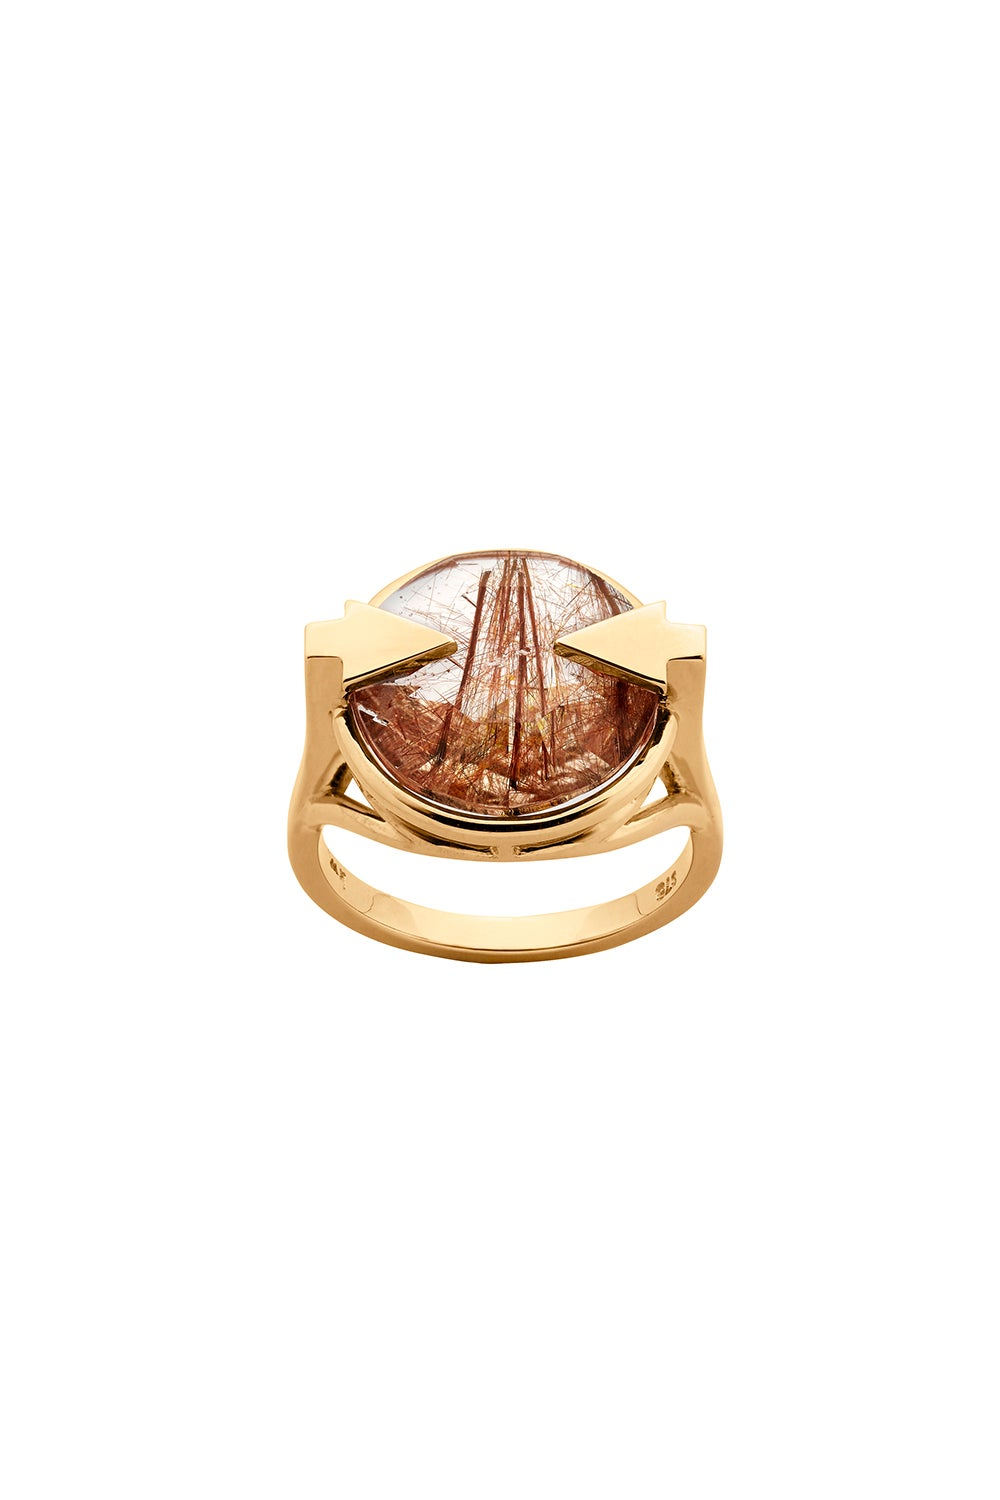 Navigator Ring with 14mm Round Rutilated Quartz Gold